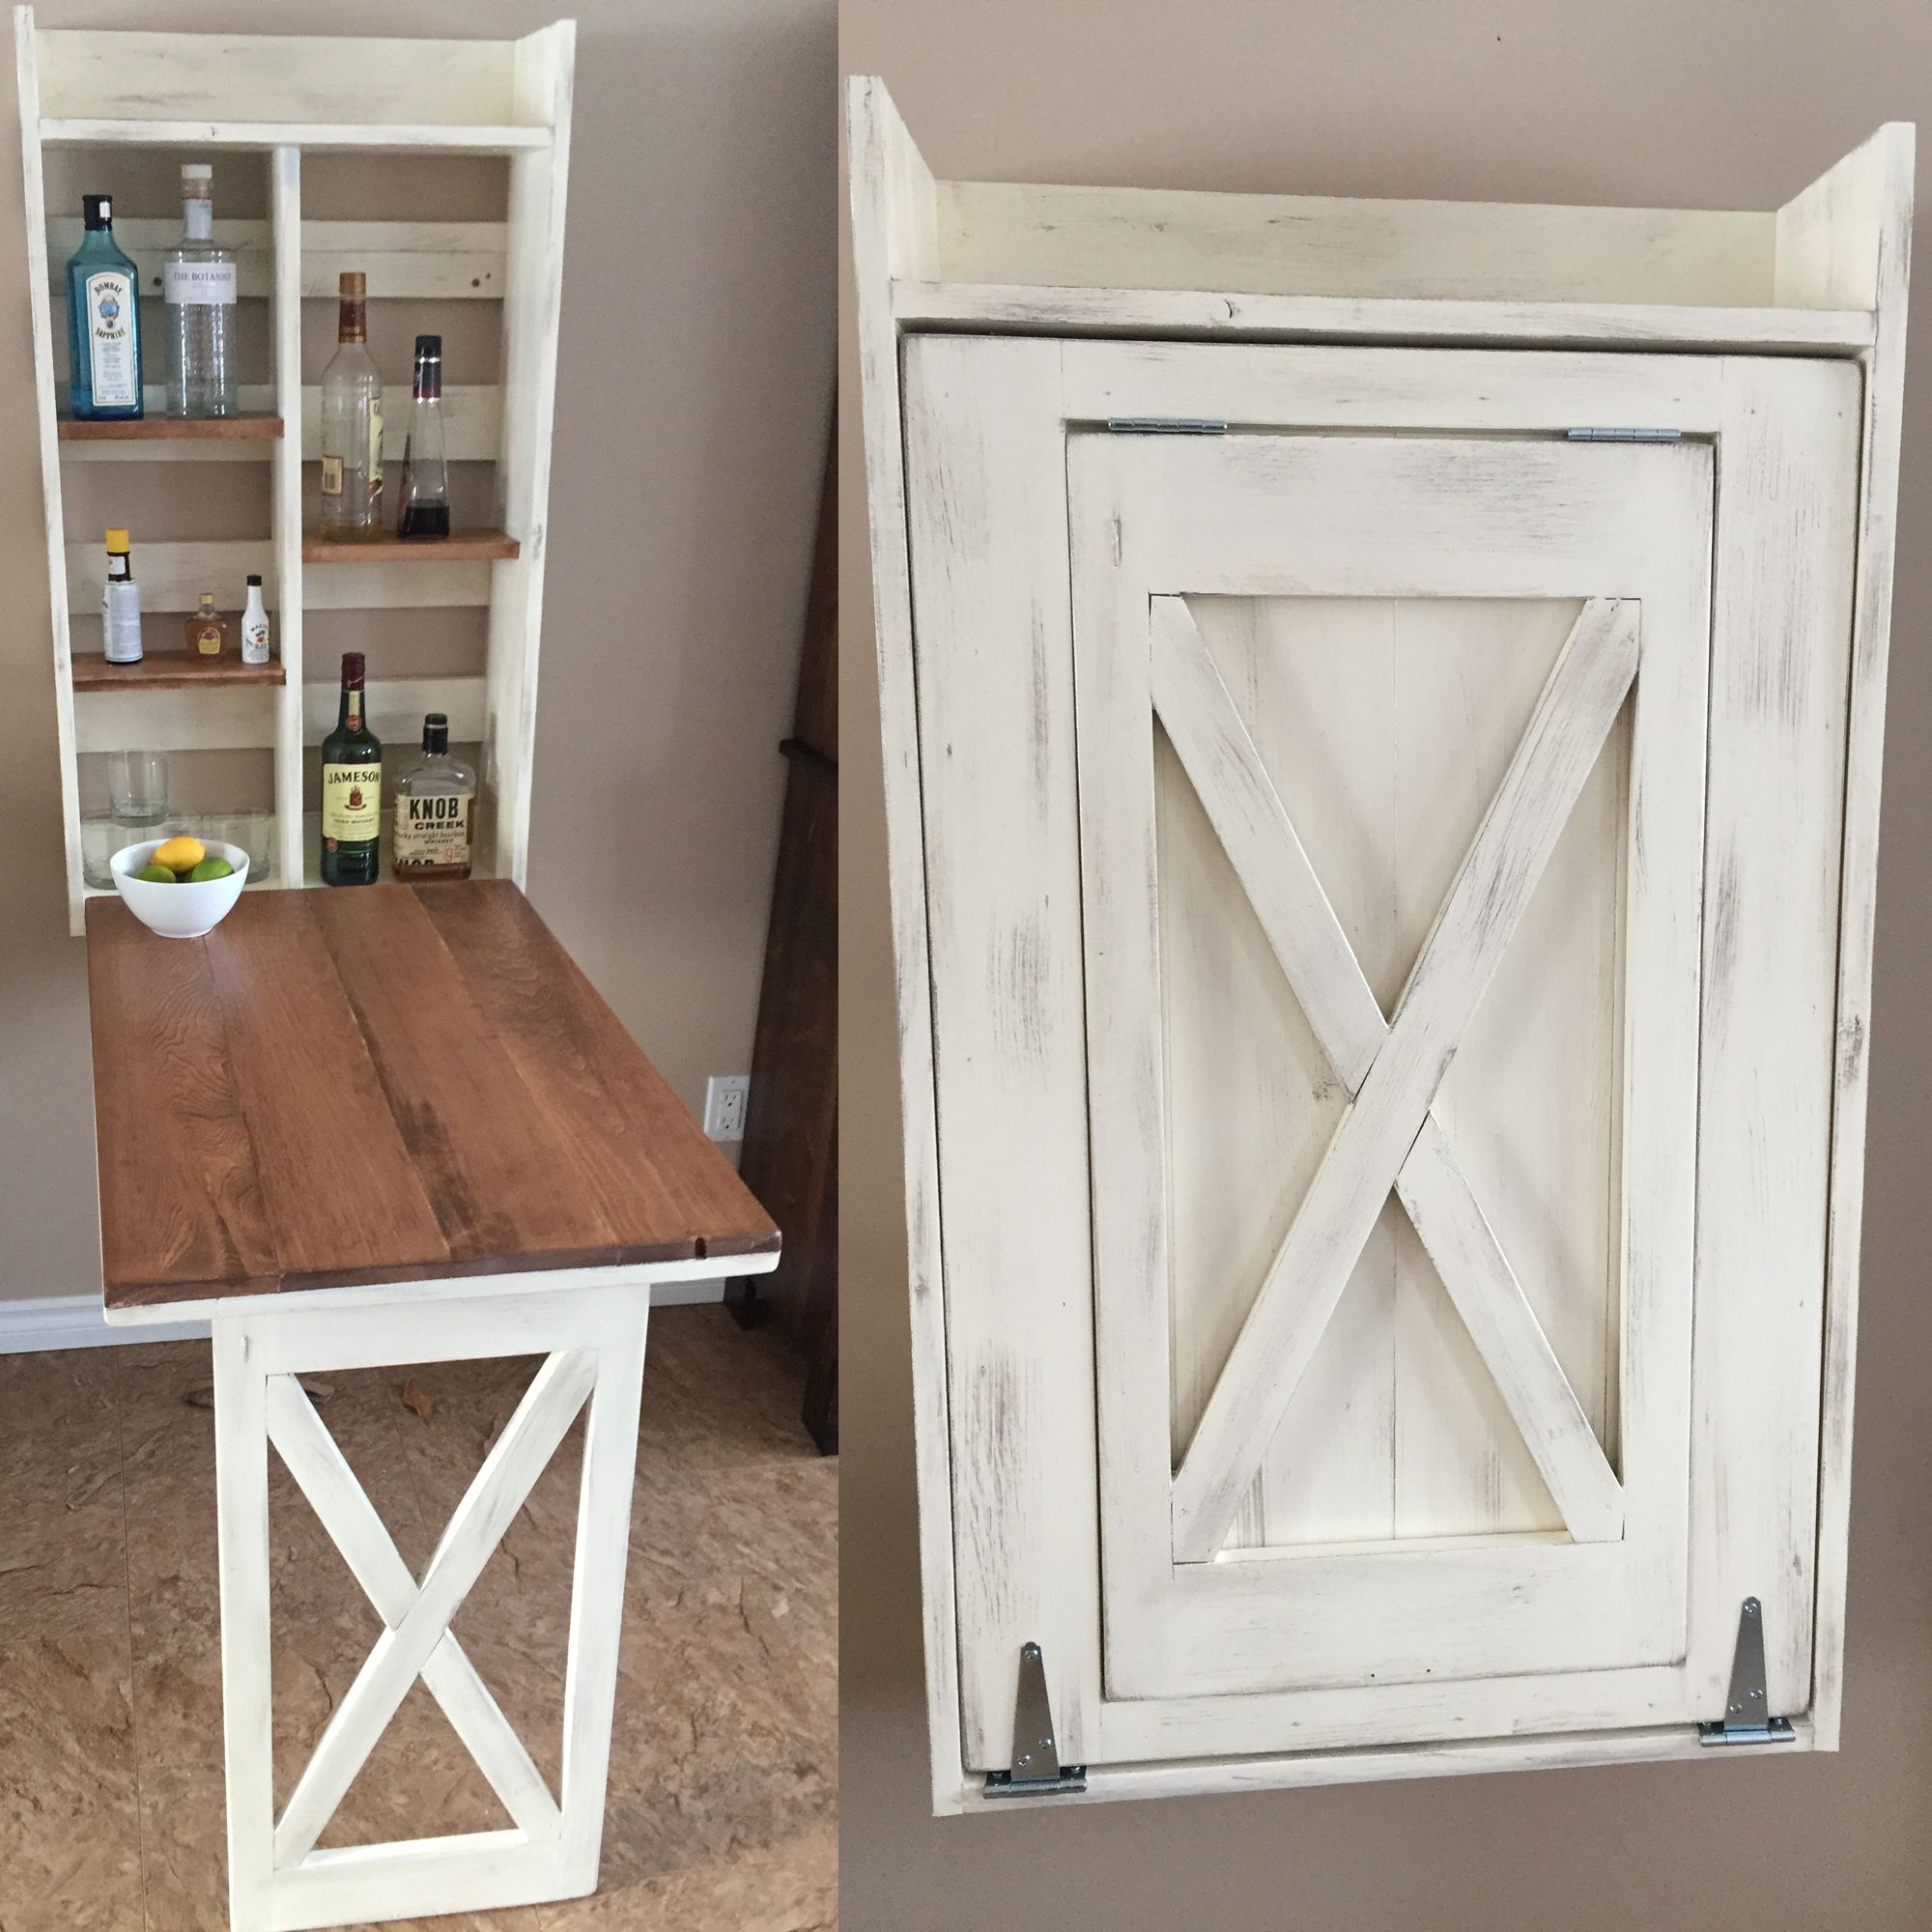 Drop down murphy bar - DIY Projects | DIY Bloggers to ...